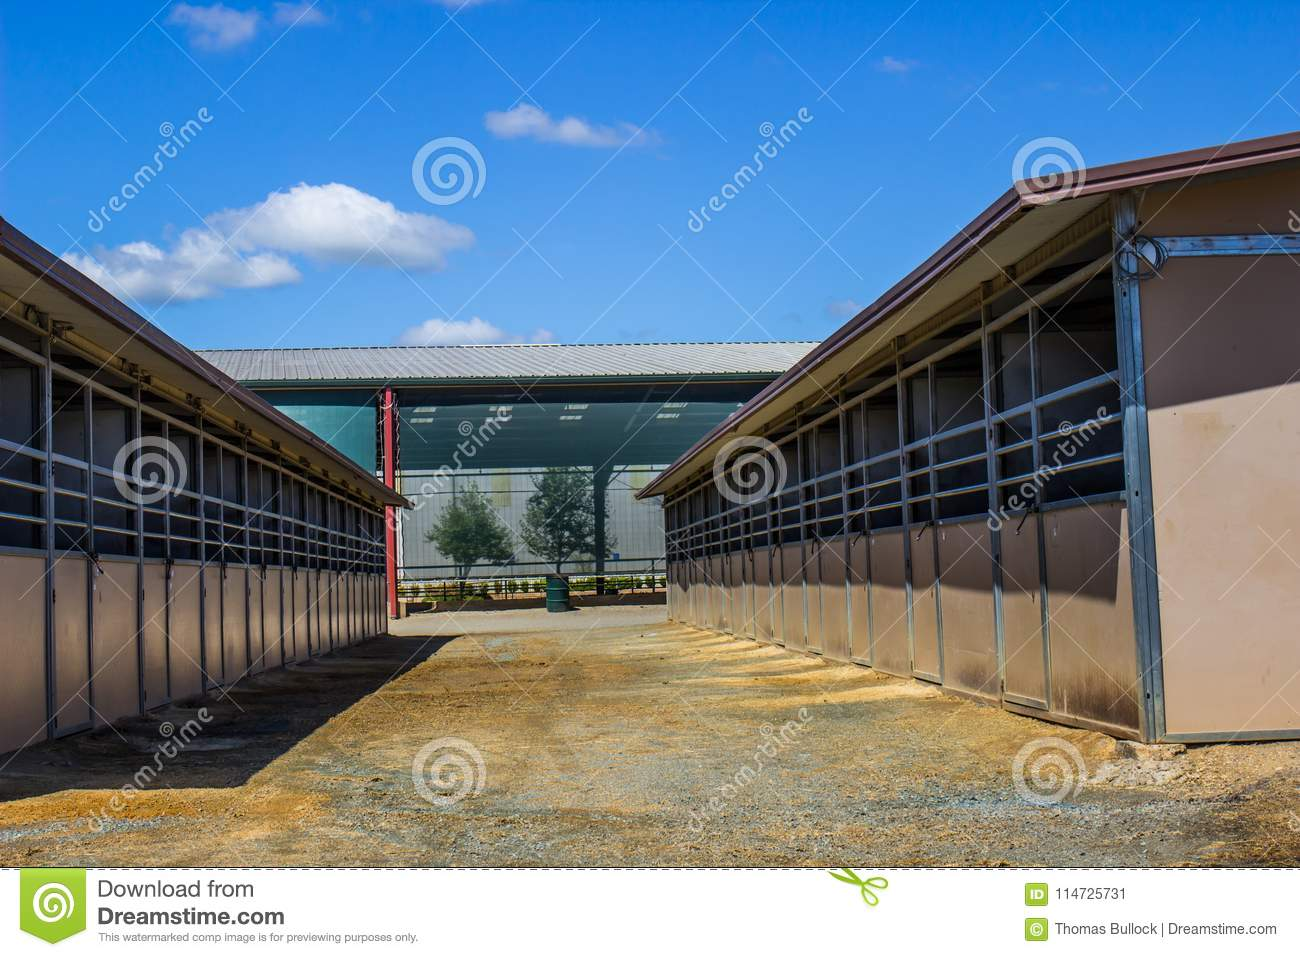 Horse Stalls Outside Equestrian Arena Stock Image Image Of Equistrian Doors 114725731